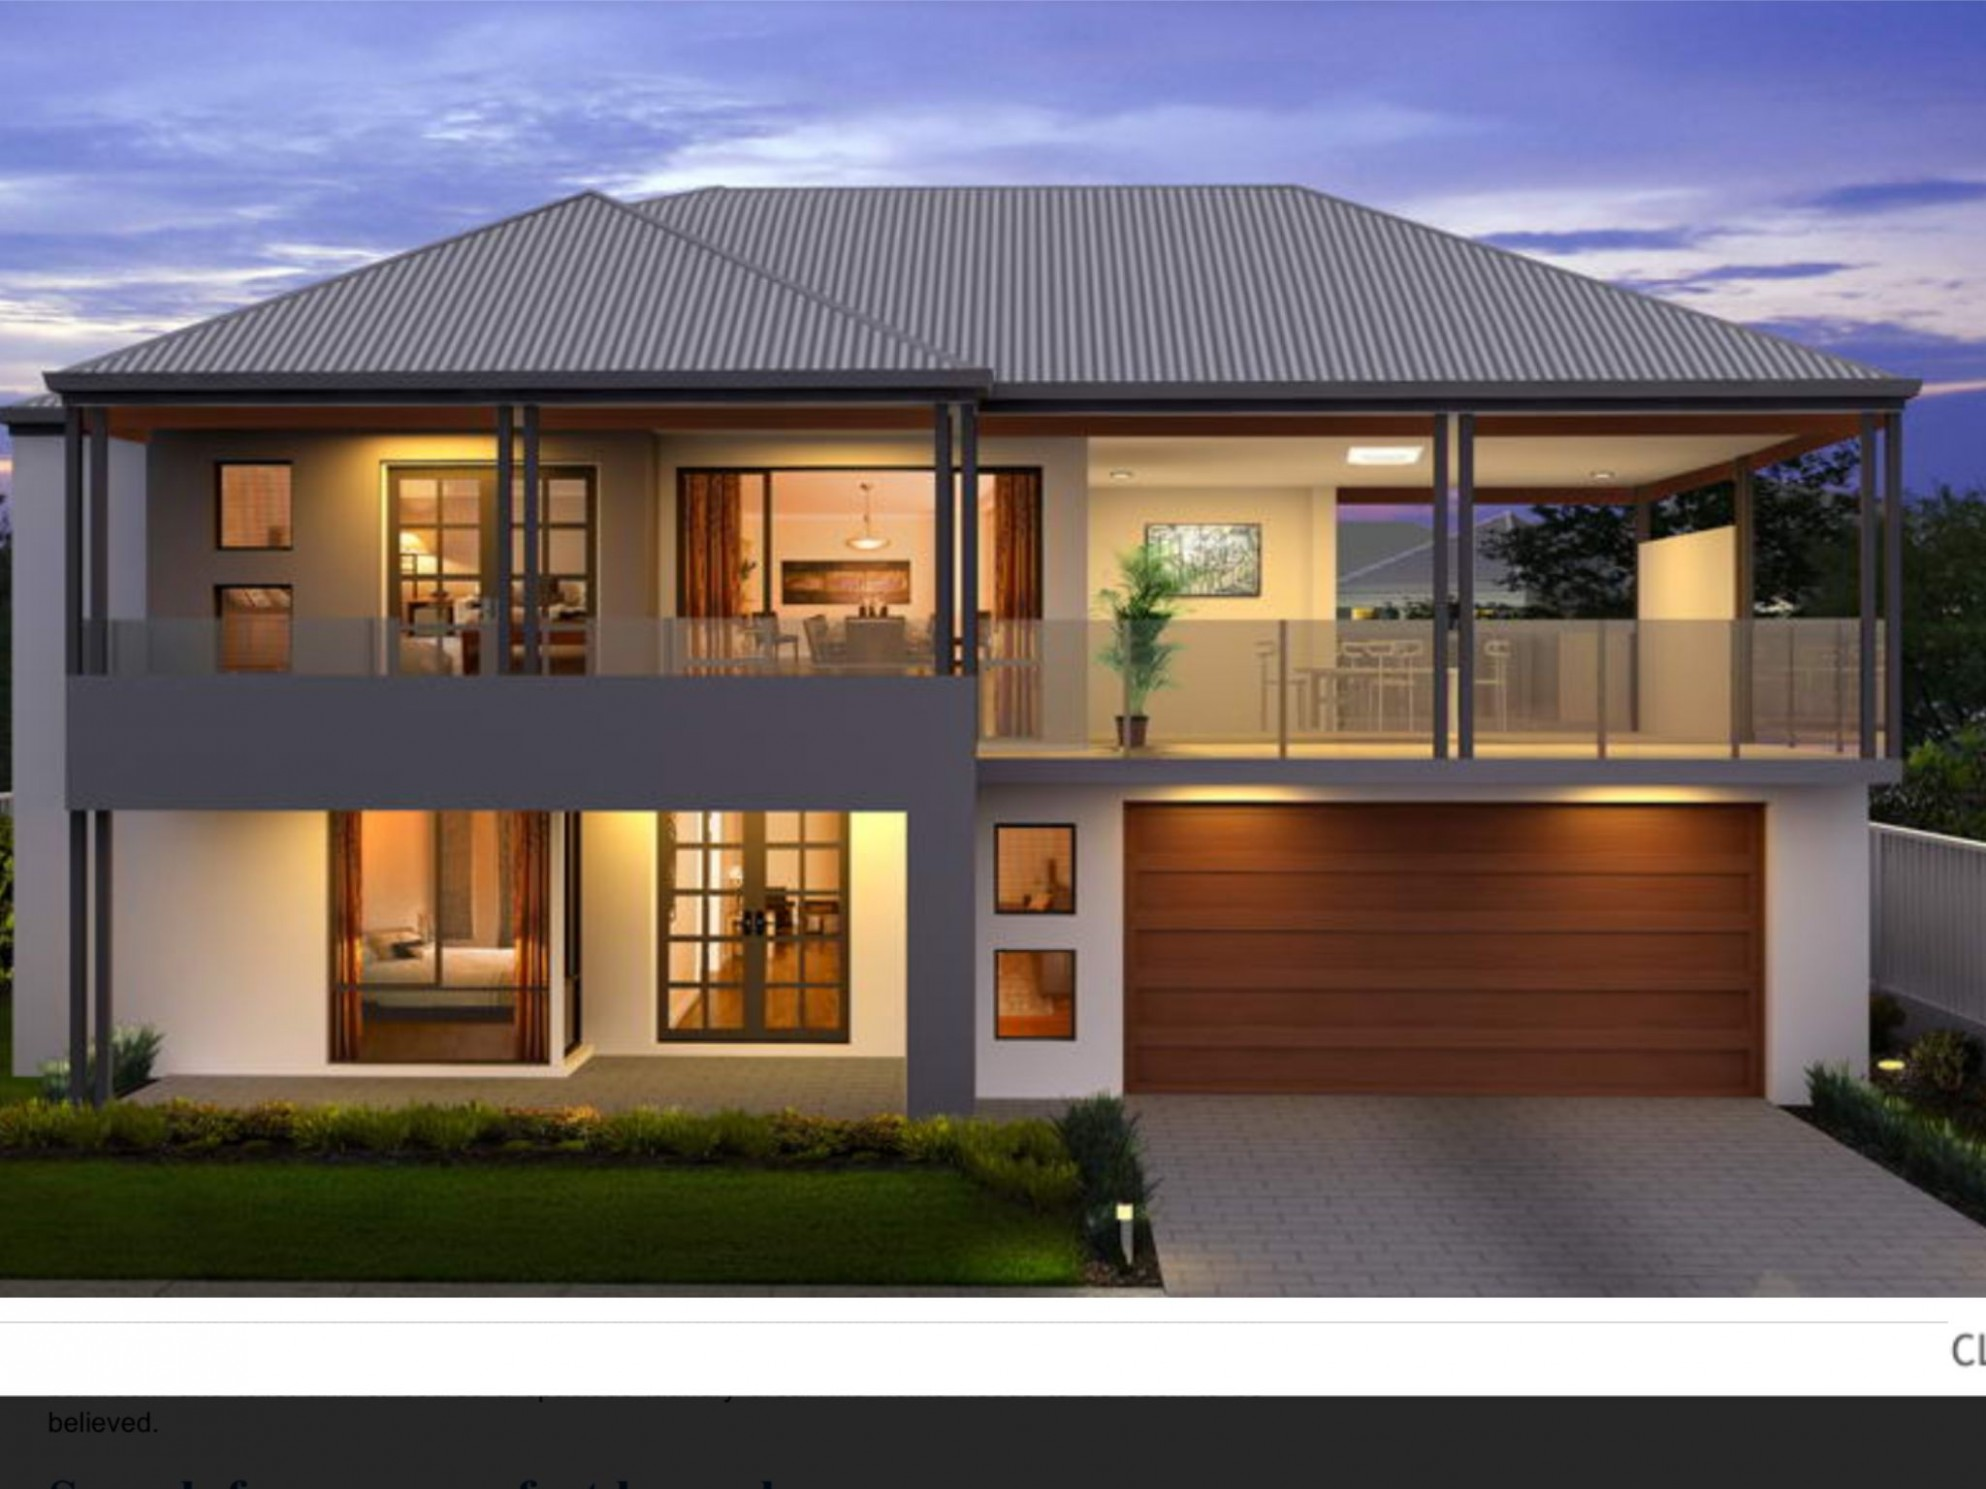 Two storey facade, grey roof, balcony over garage, glass railing  - Apartment Design Two Storey